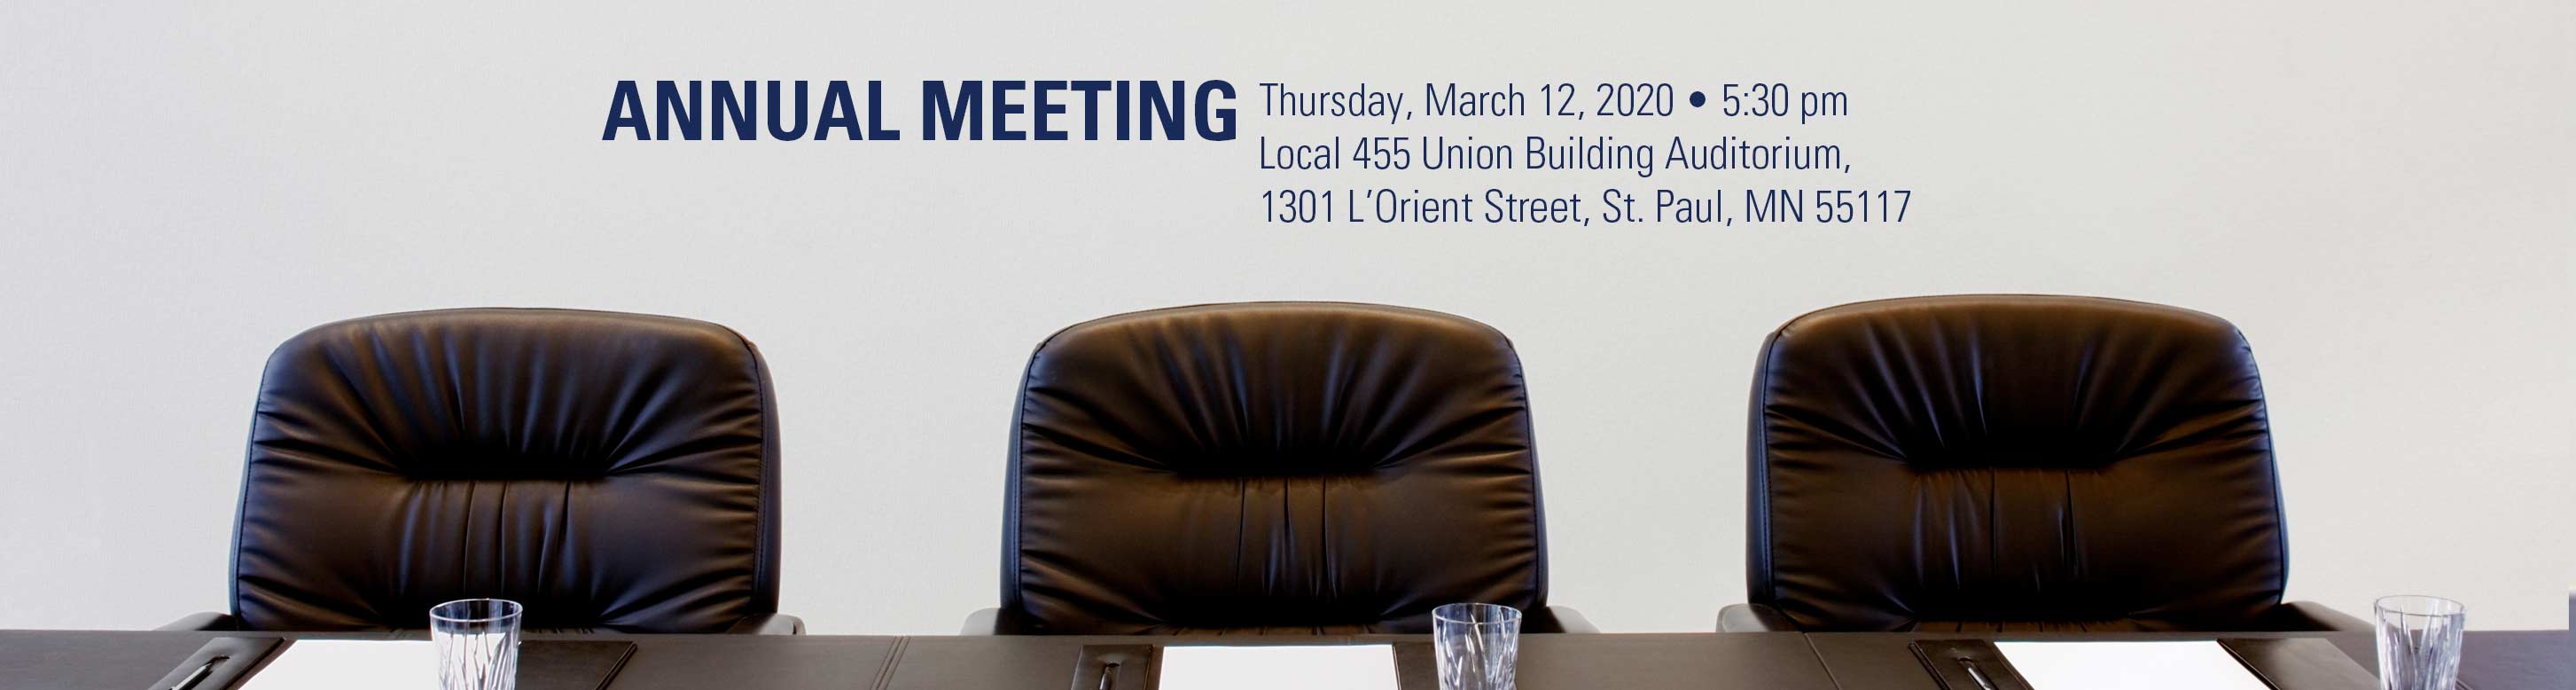 The annual meeting will be held Thursday, March 12, 2020 - 5:30 pm - Local 455 Union Building Auditorium,1301 L'Orient Street, St. Paul, MN 55117